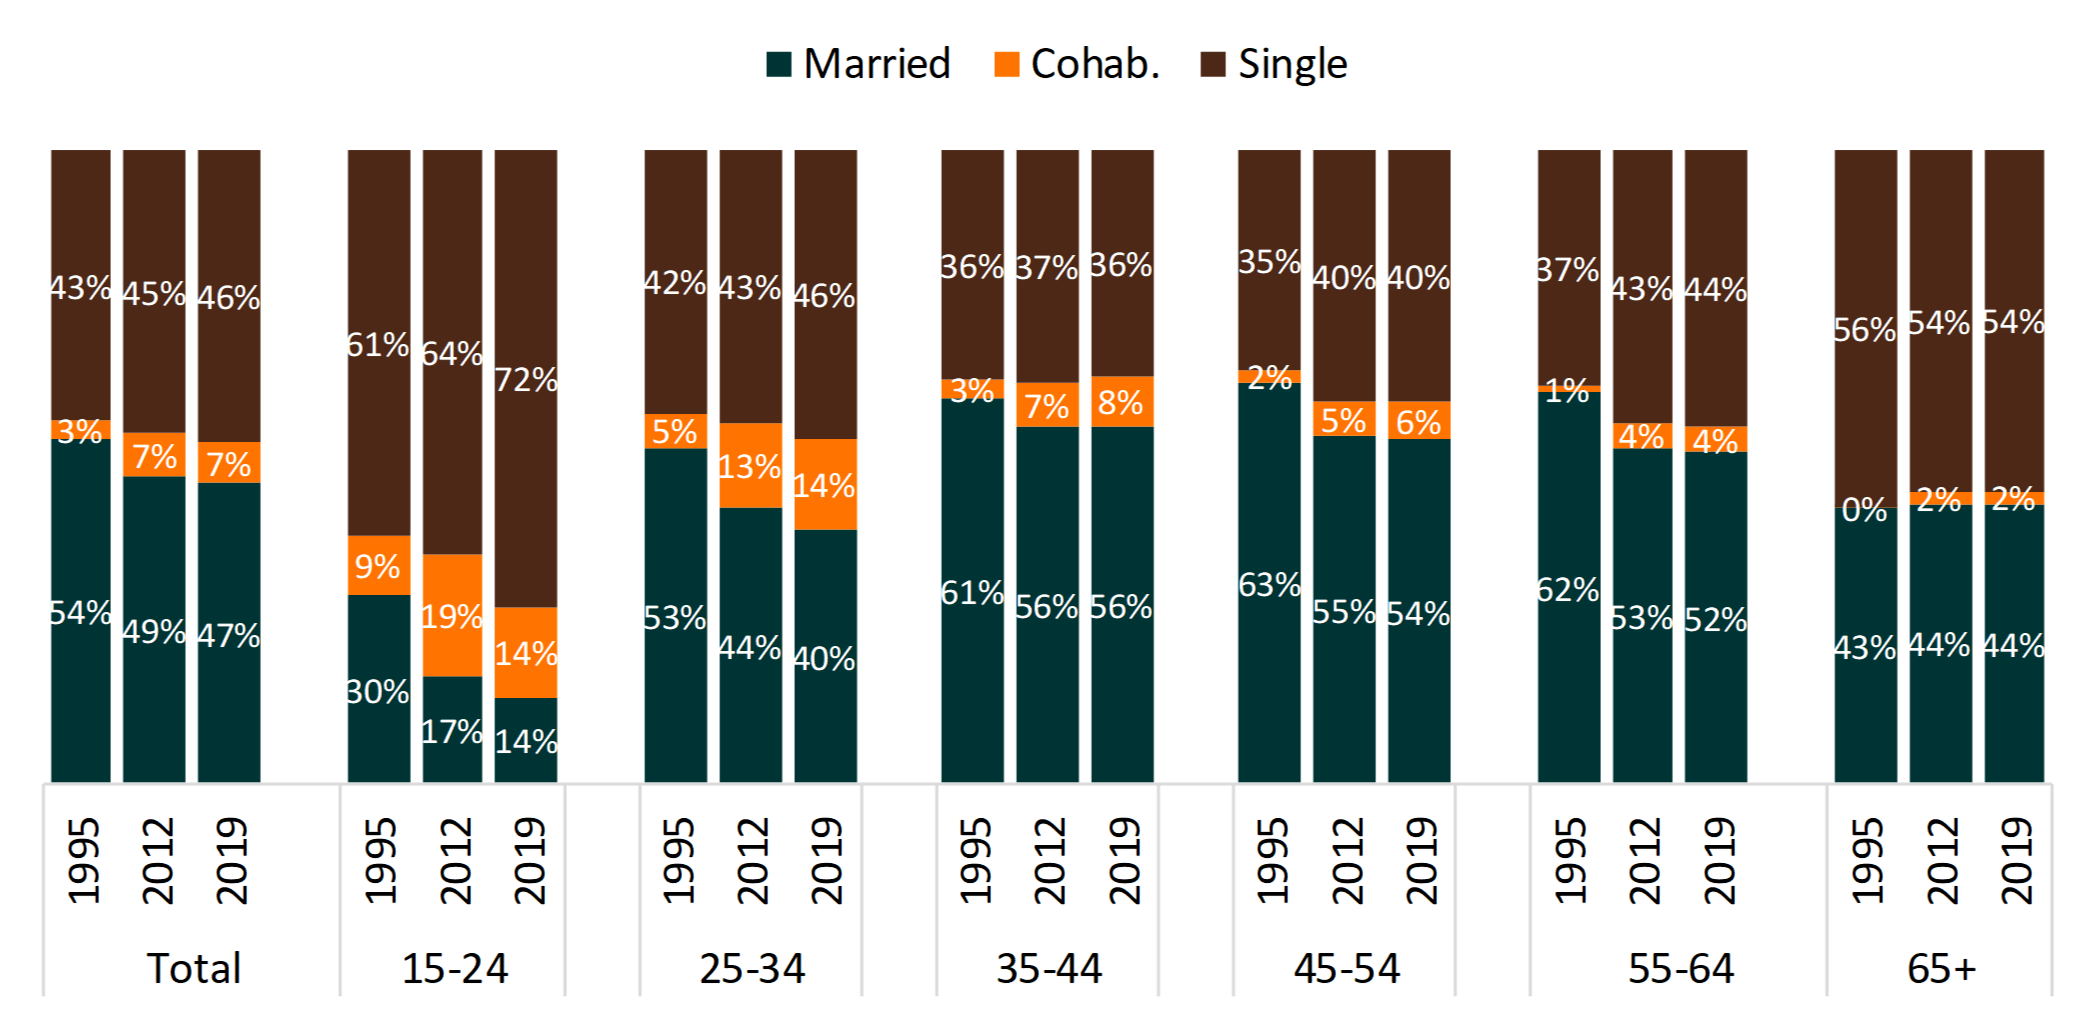 bar chart showing Figure 1. Changes in the Shares of Single, Cohabiting, and Married Households, by Age